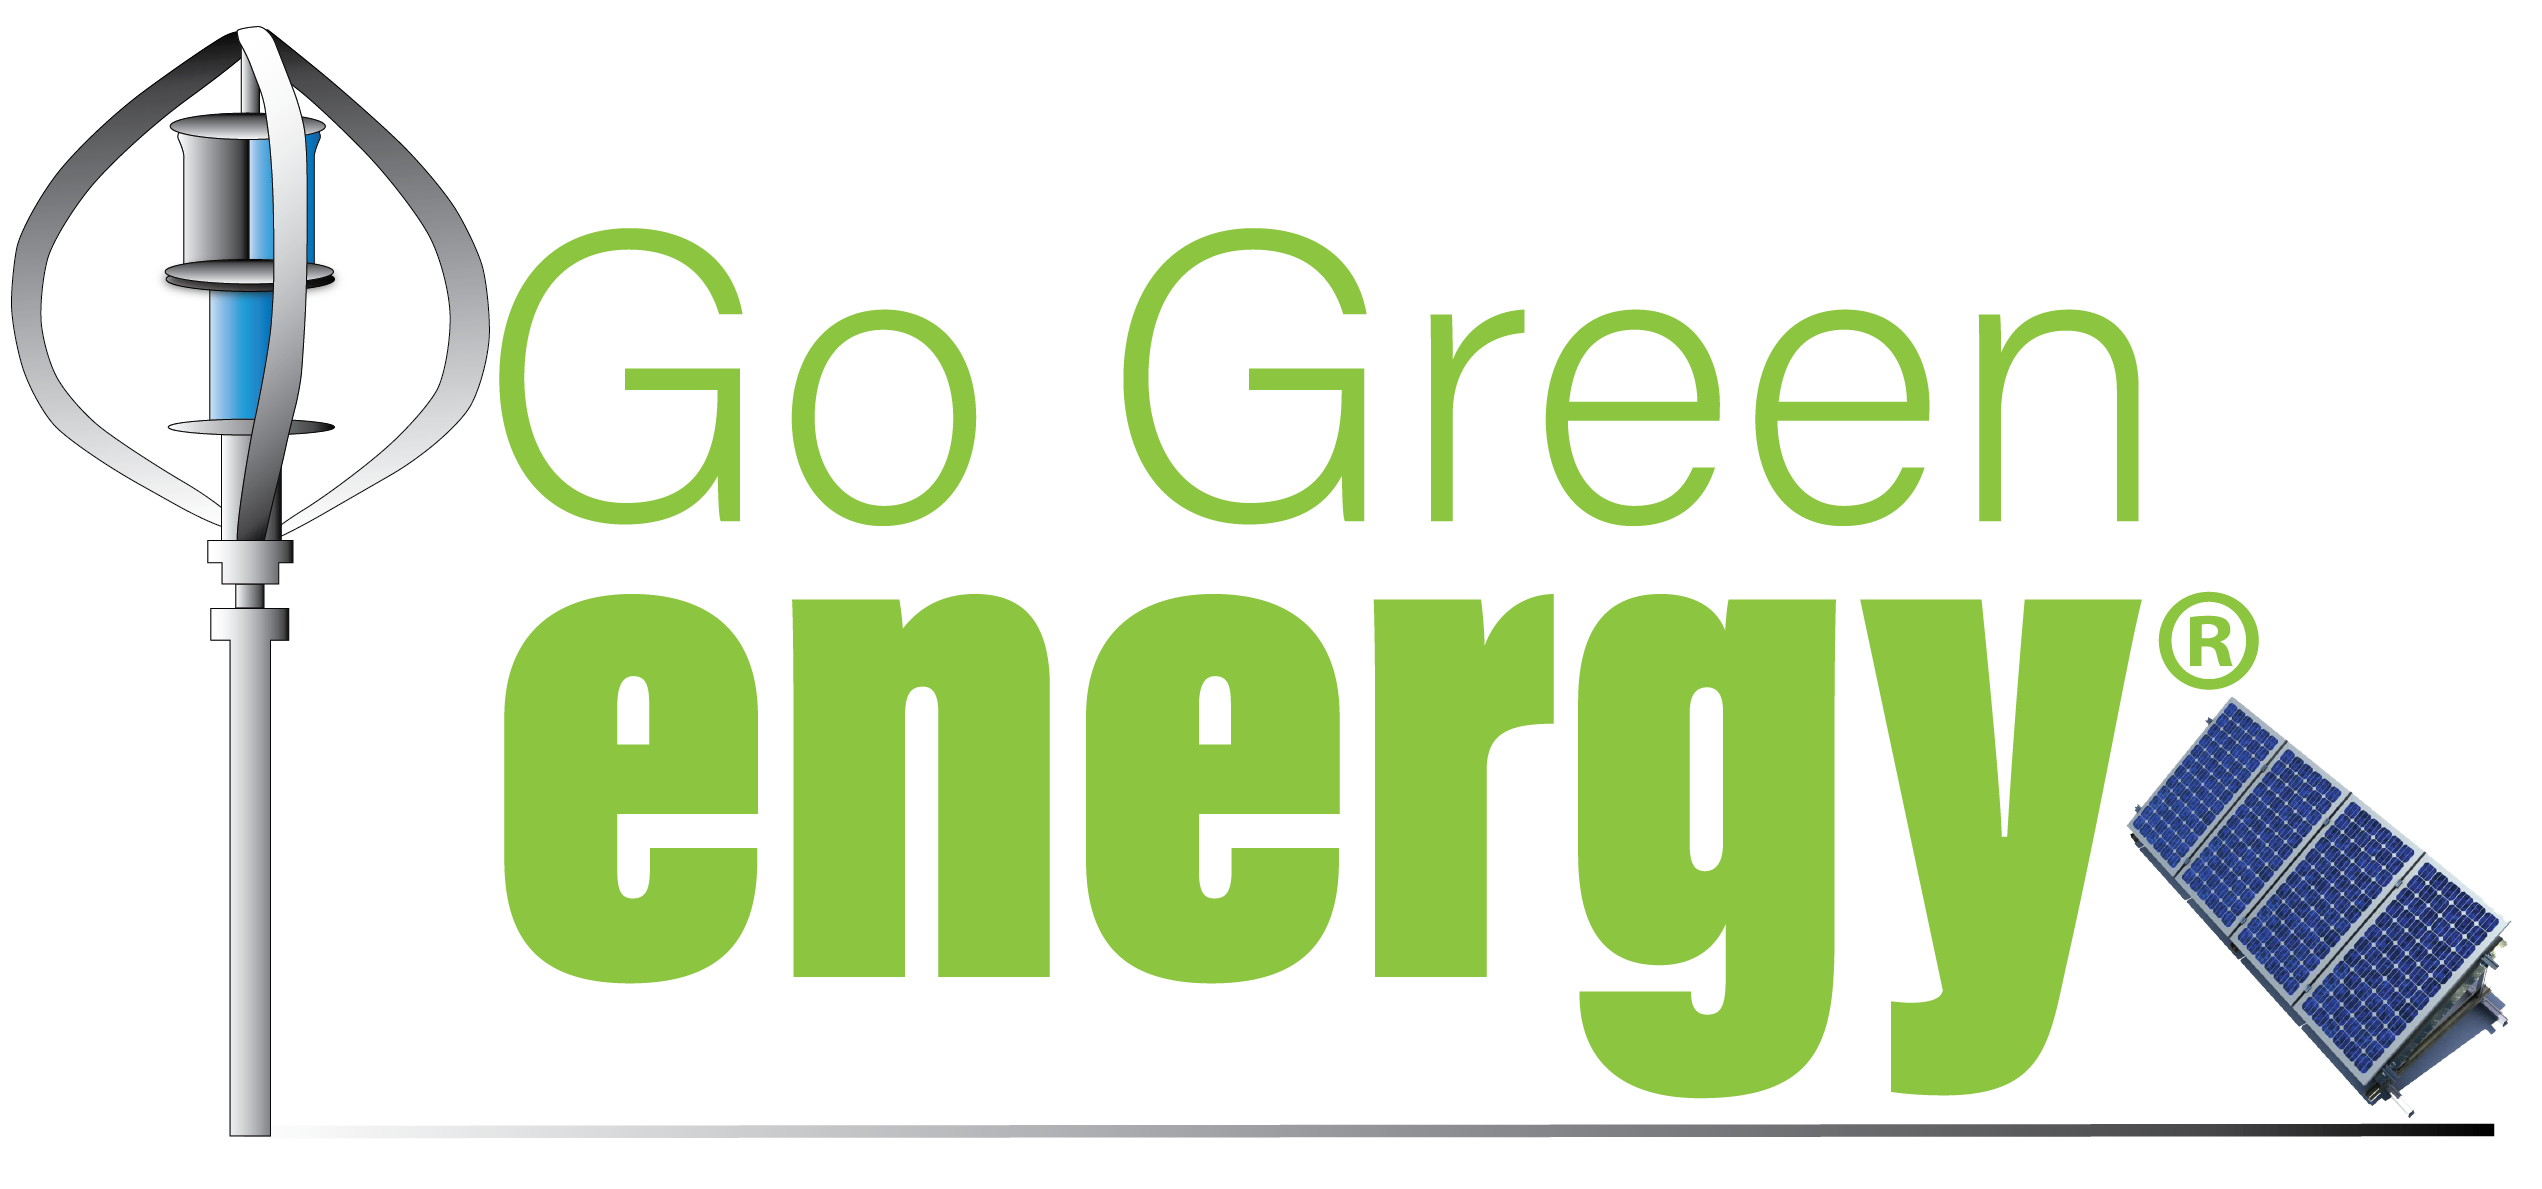 6Go_Green_Energy_Logo_Final-01.png